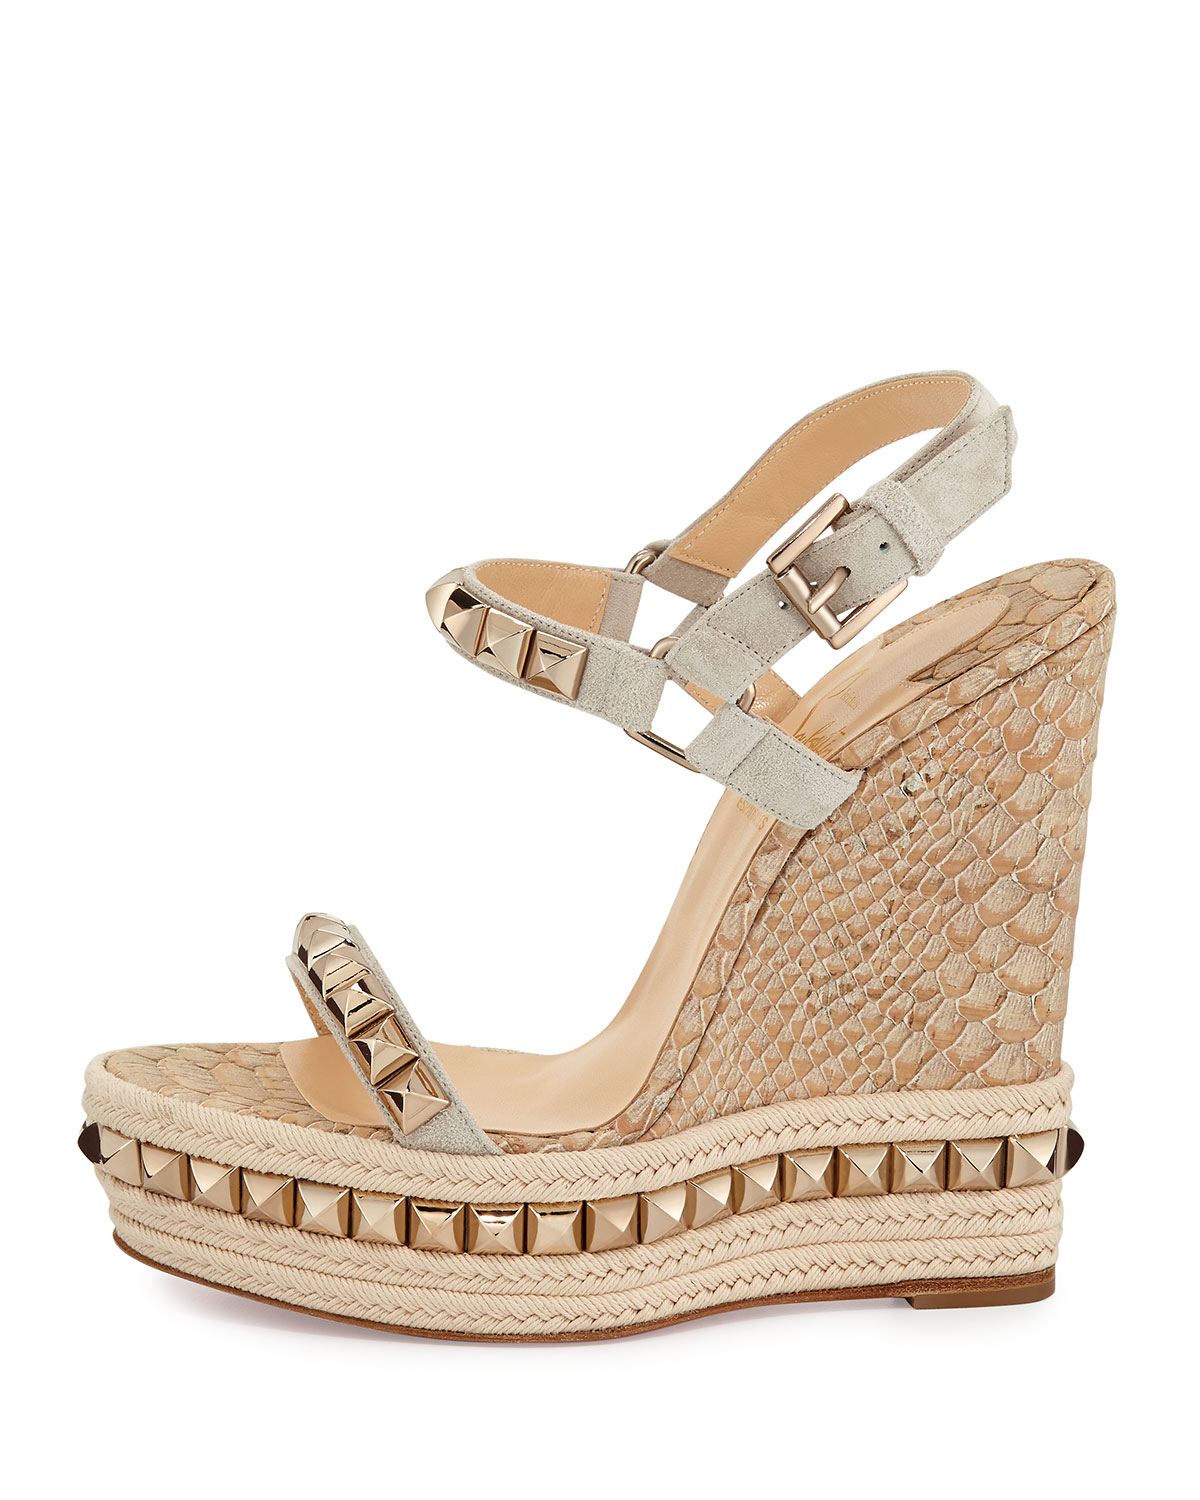 replica sneaker - Christian louboutin Cataclou Python-Embossed Wedge Sandals in Gold ...